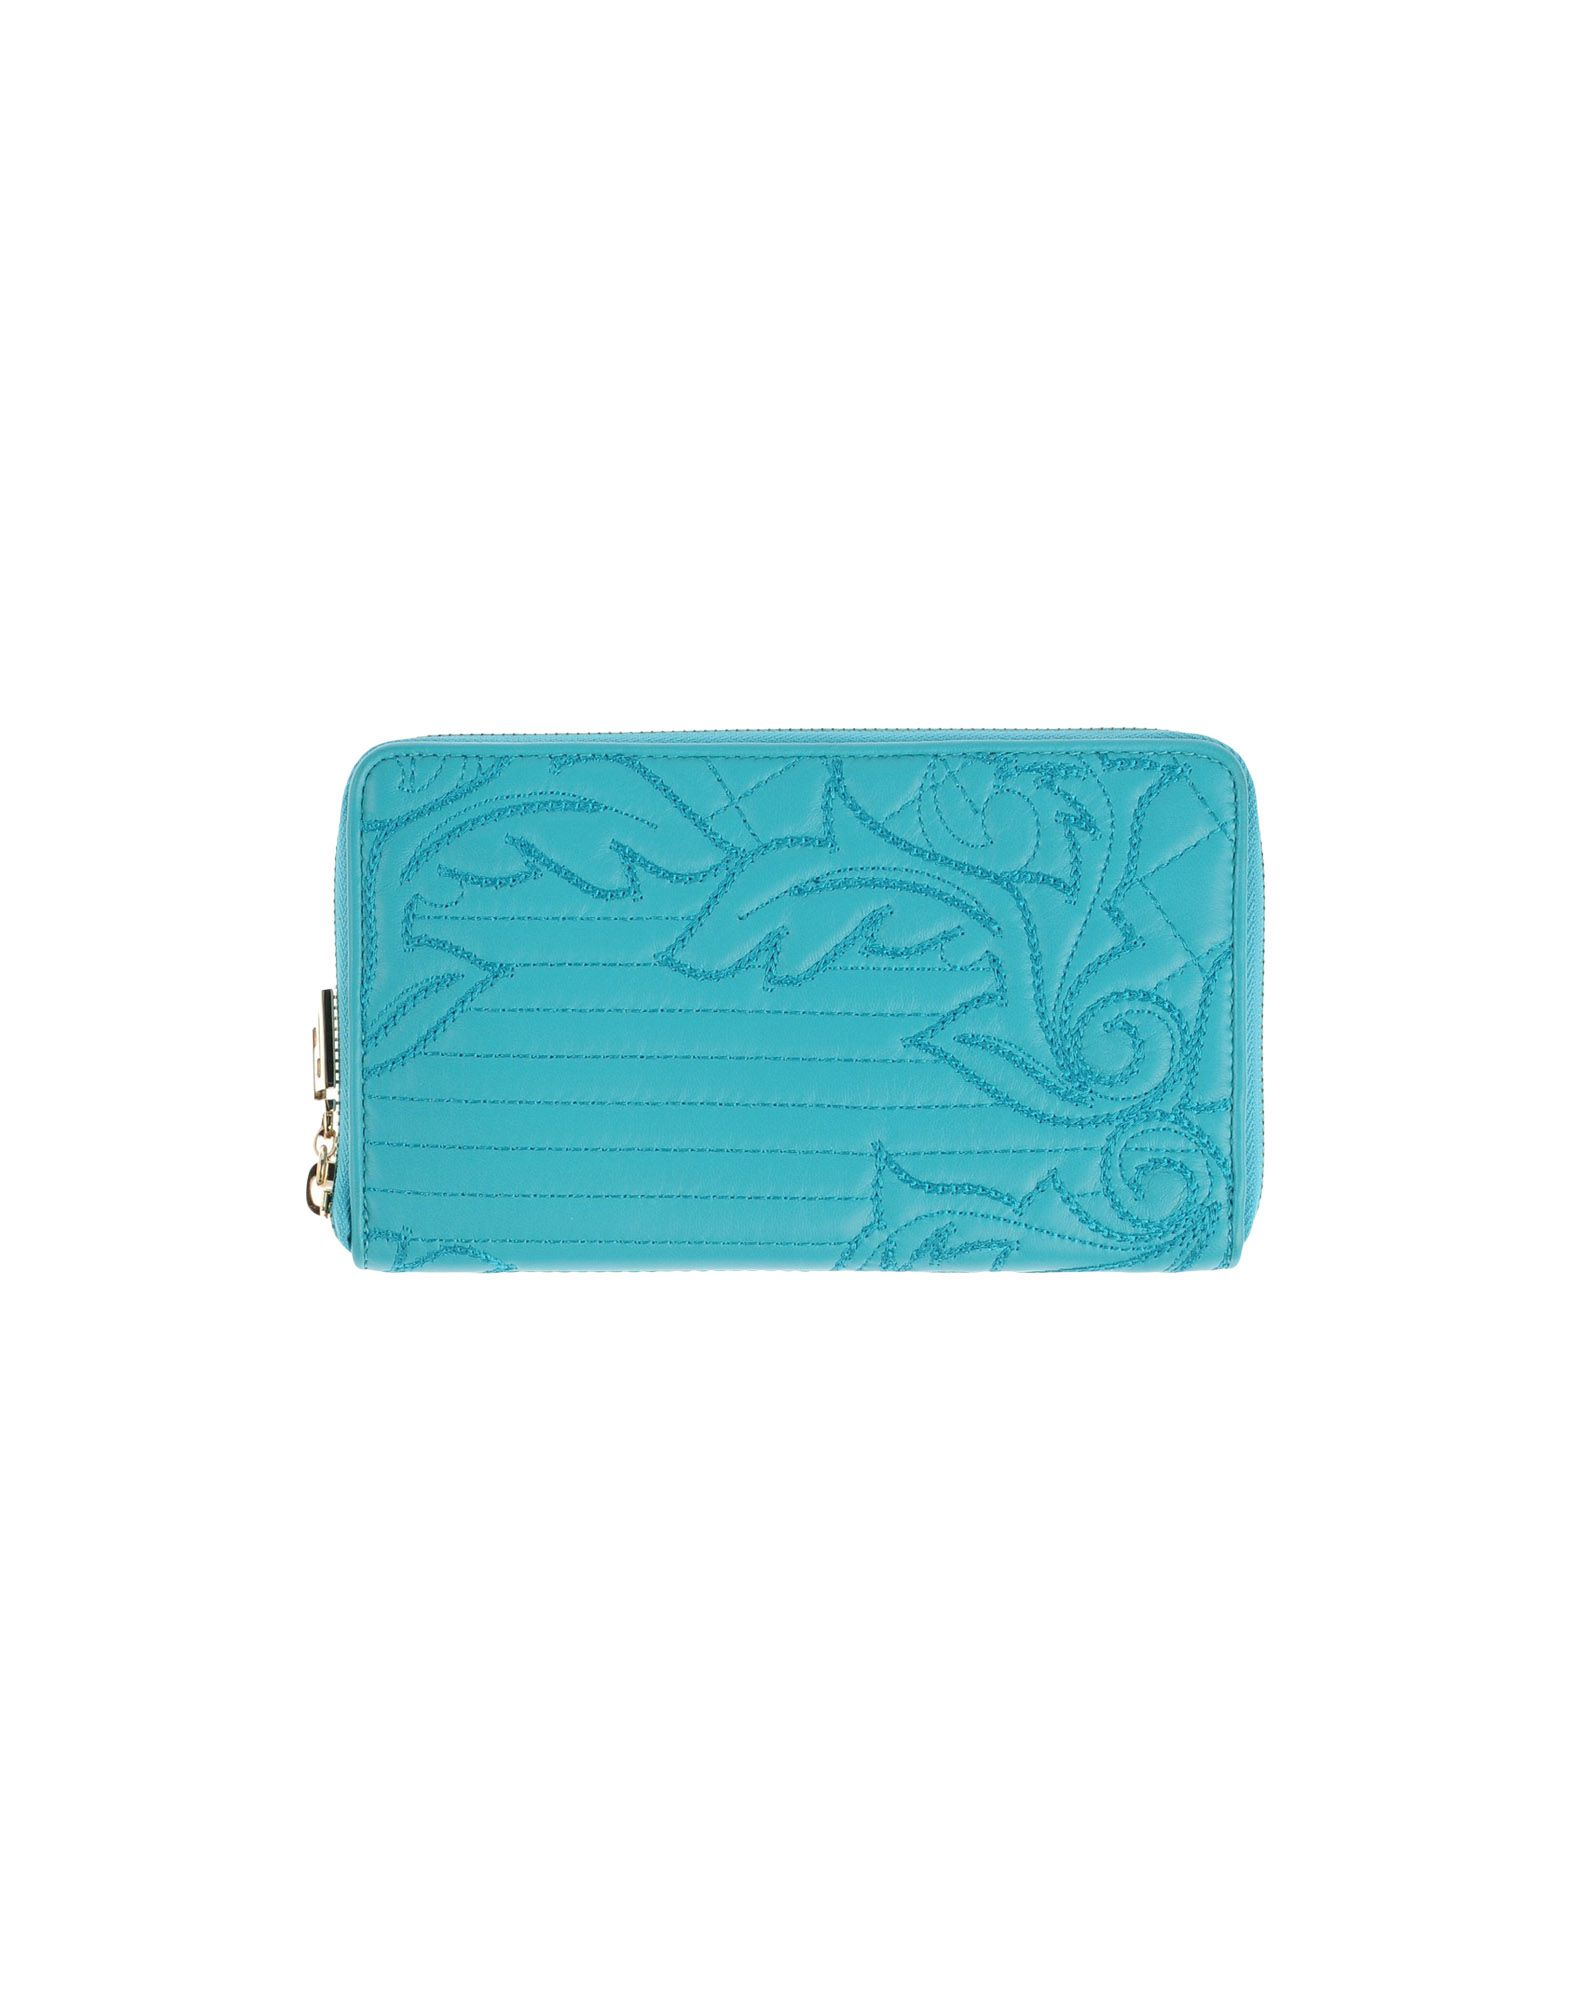 GIANNI VERSACE Wallet in Turquoise